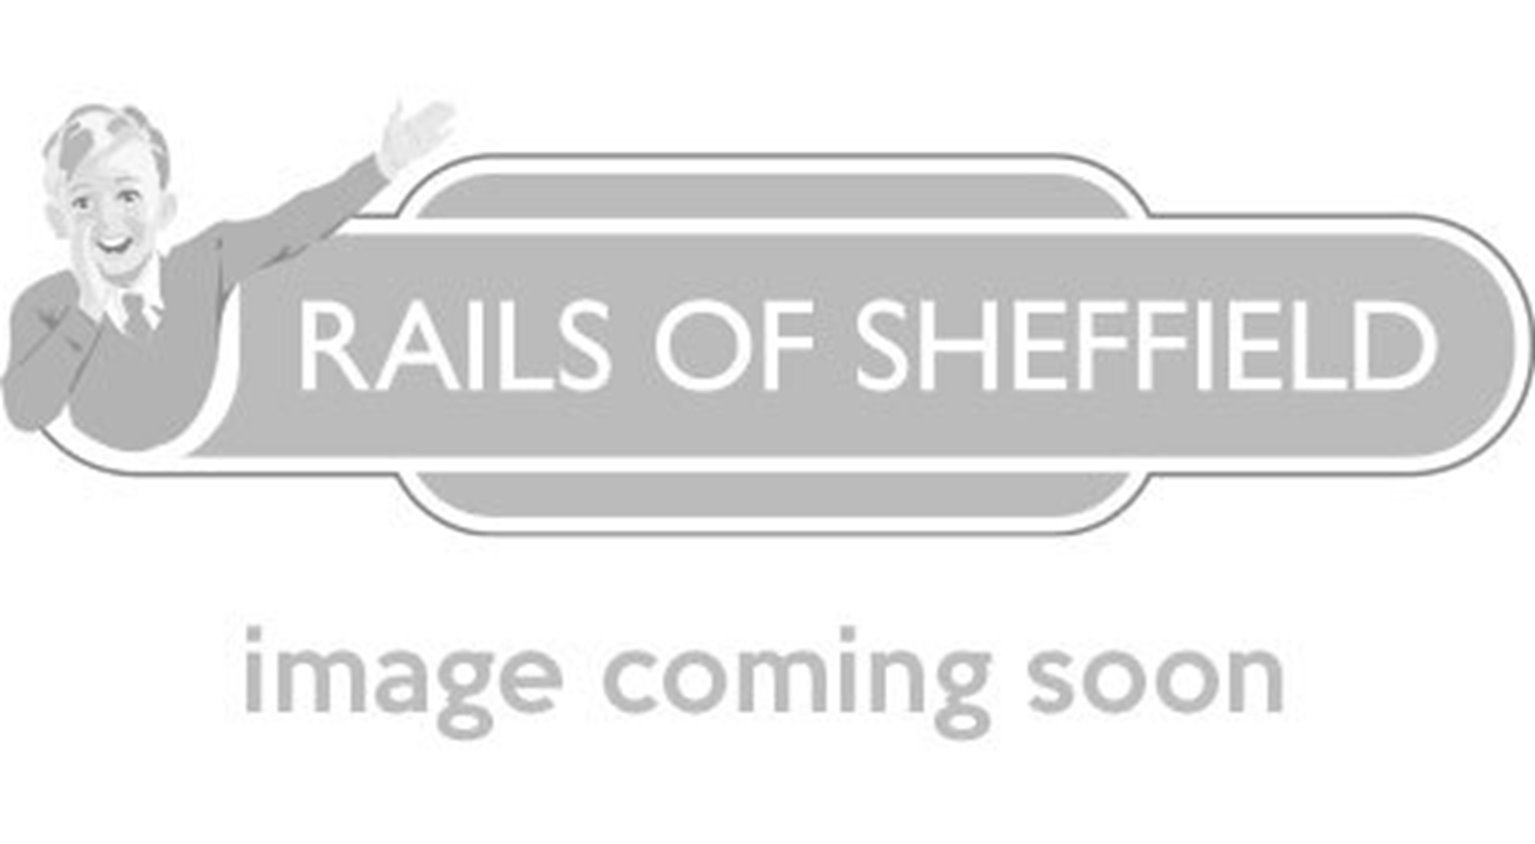 50 x 100 Green Grass Rg Roll